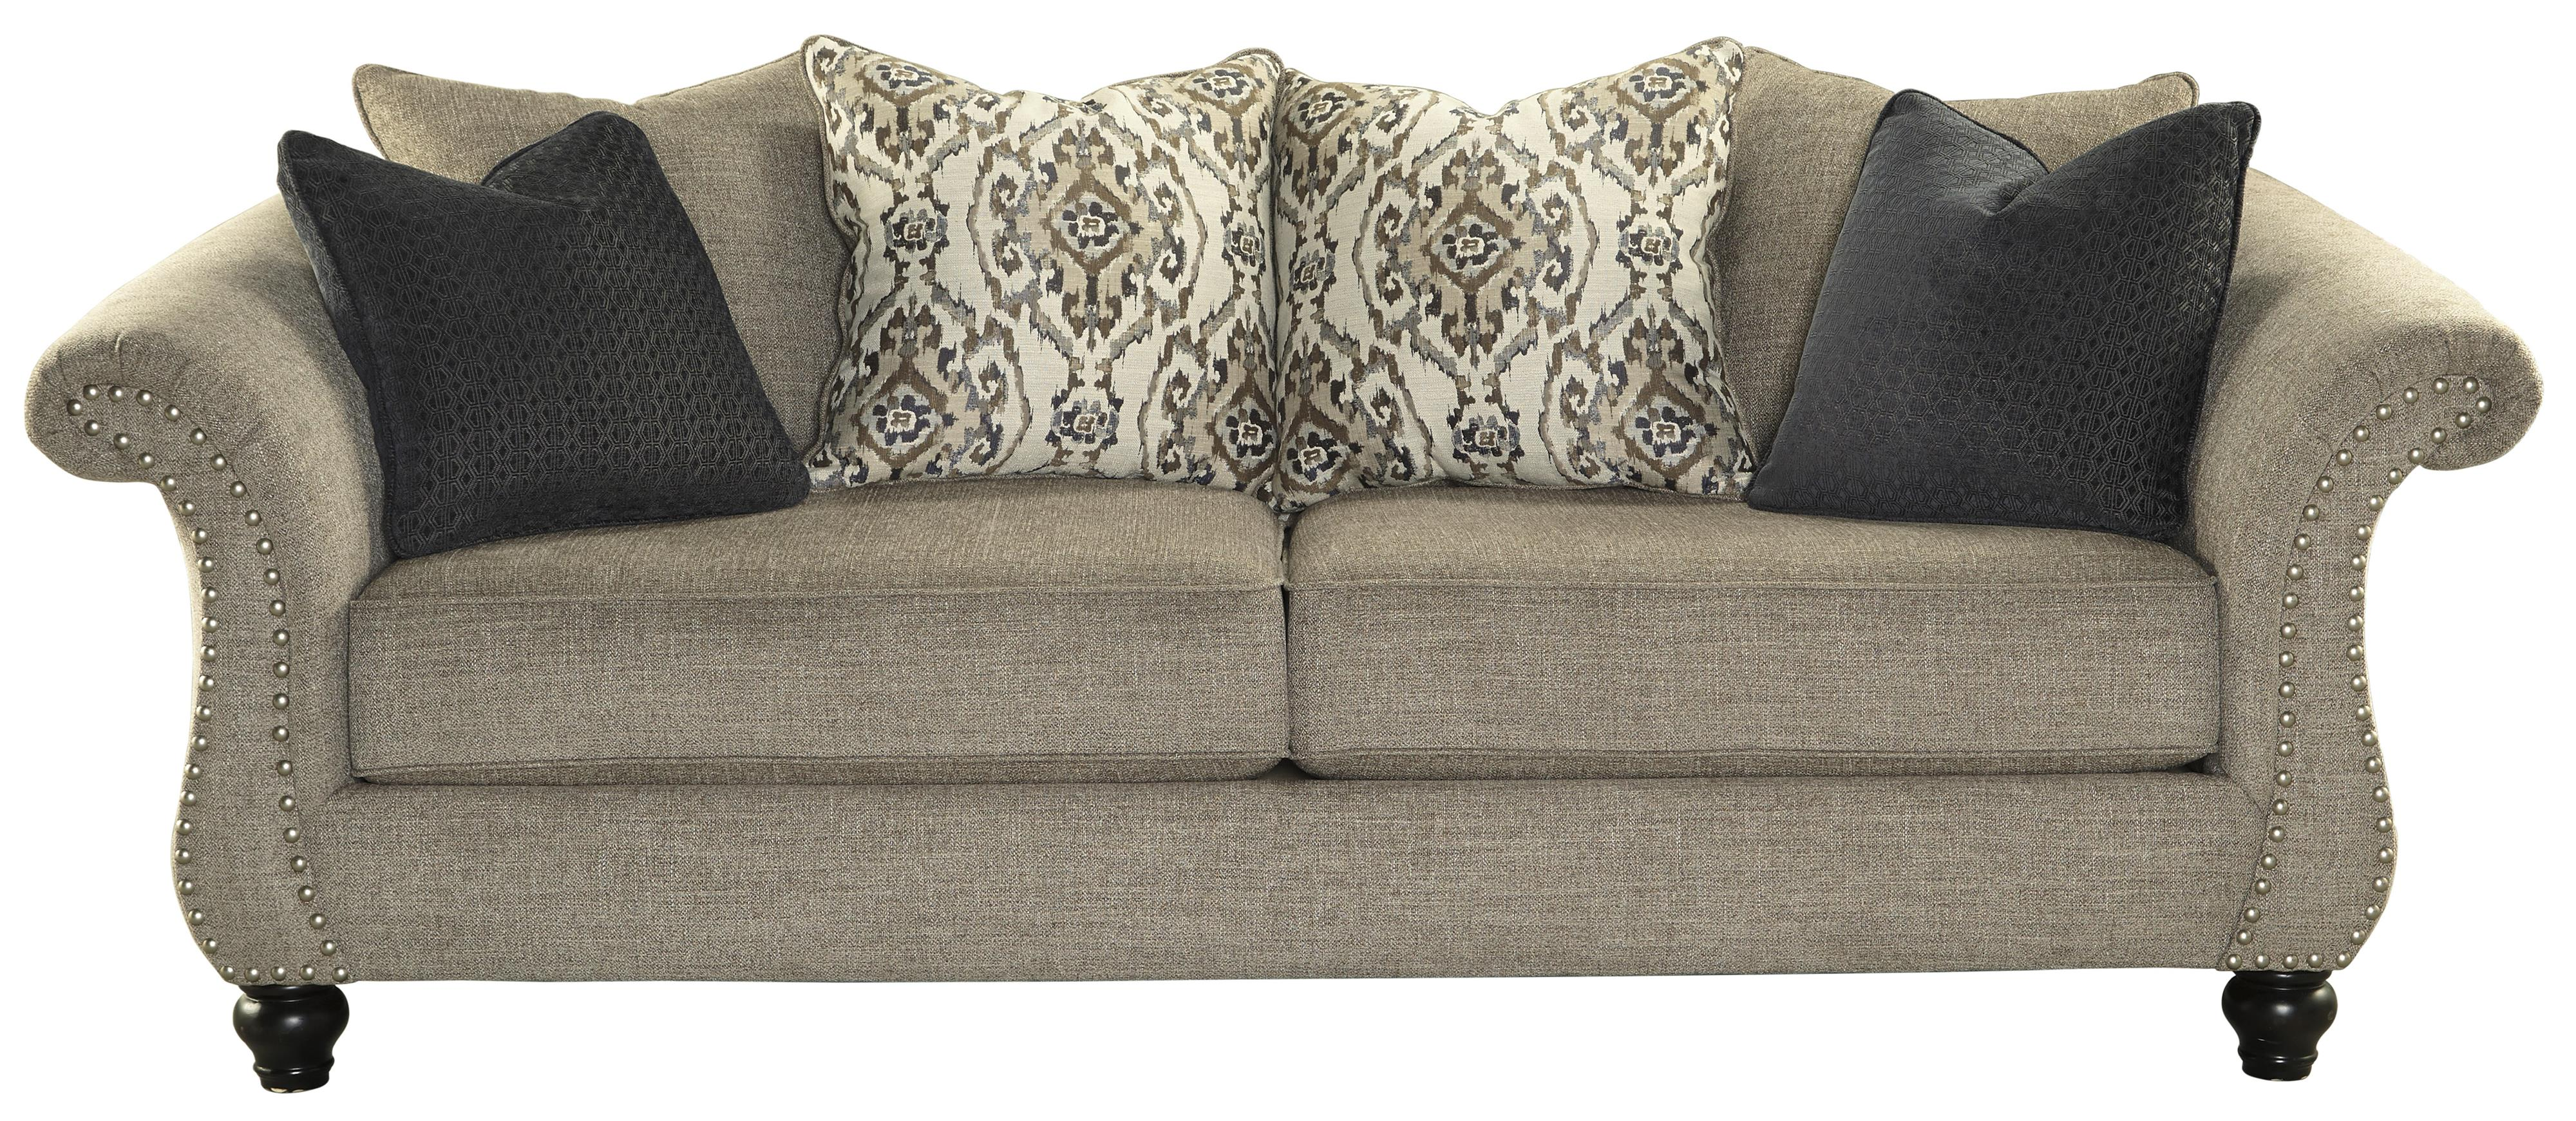 Benchcraft Jonette Sofa - Item Number: 4610138